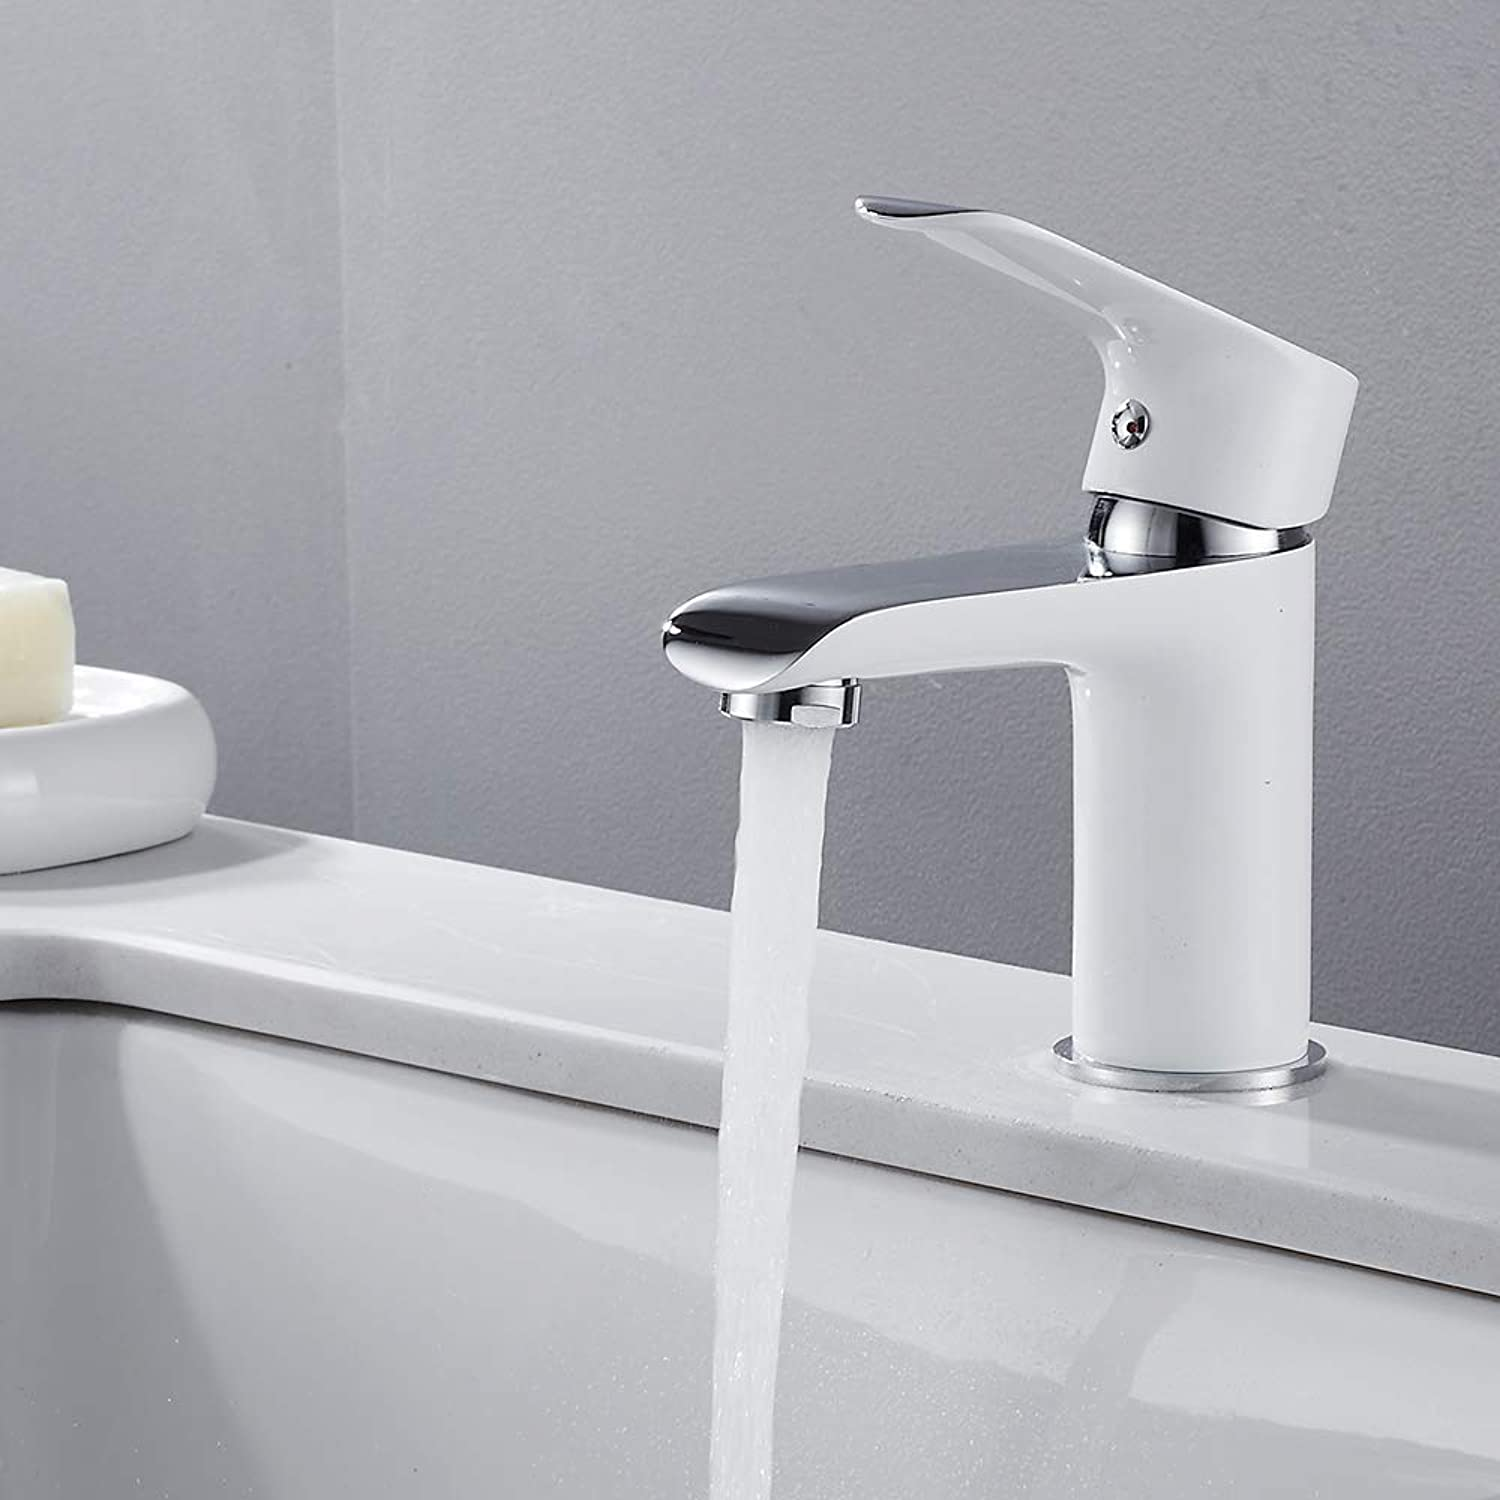 Faucetbasin Sink Tap Mixer Modern Luxury Bathroom Ceramic Faucet Low Pressure Single Handle Lever Faucet Hot Cold Taps (White)